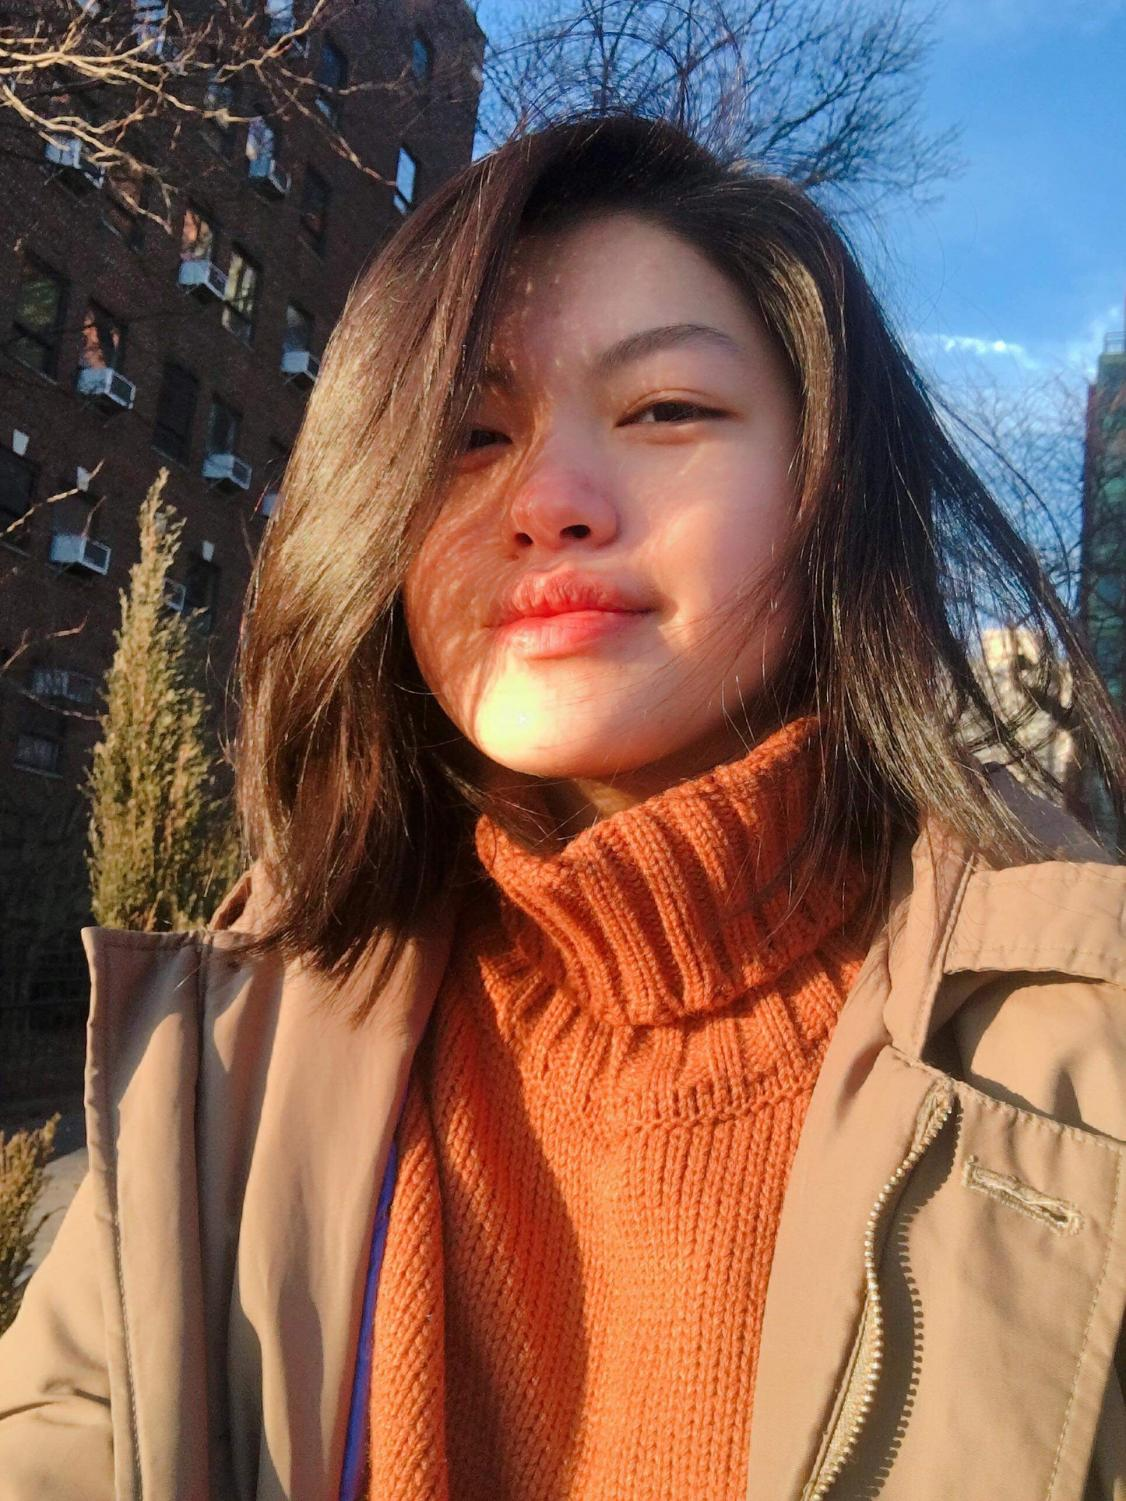 Rachel Chen '20 focuses on her priorities in order to manage her busy schedule and avoid stress.